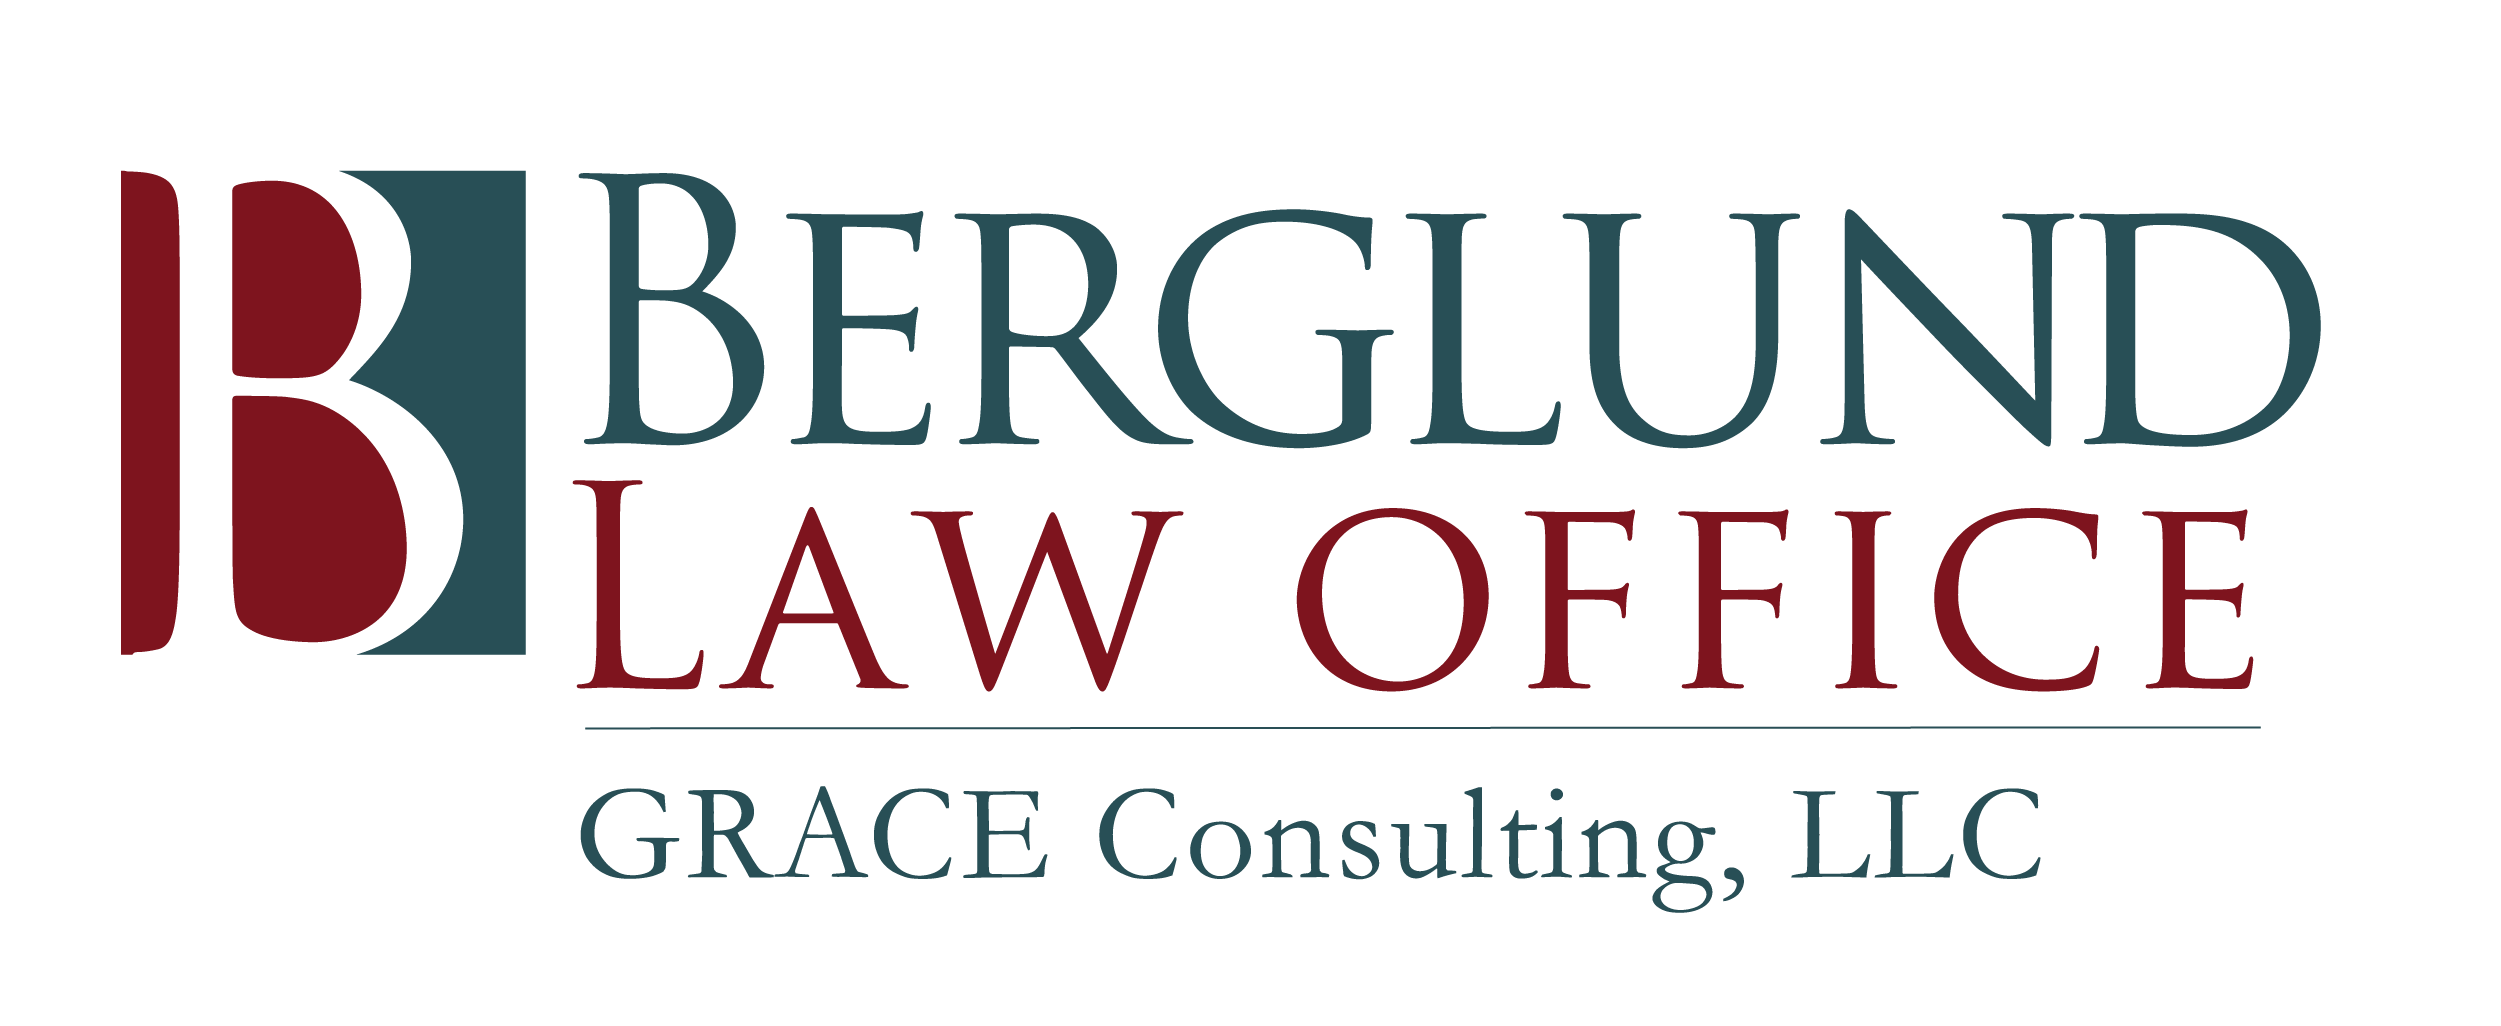 Berglund Law Office